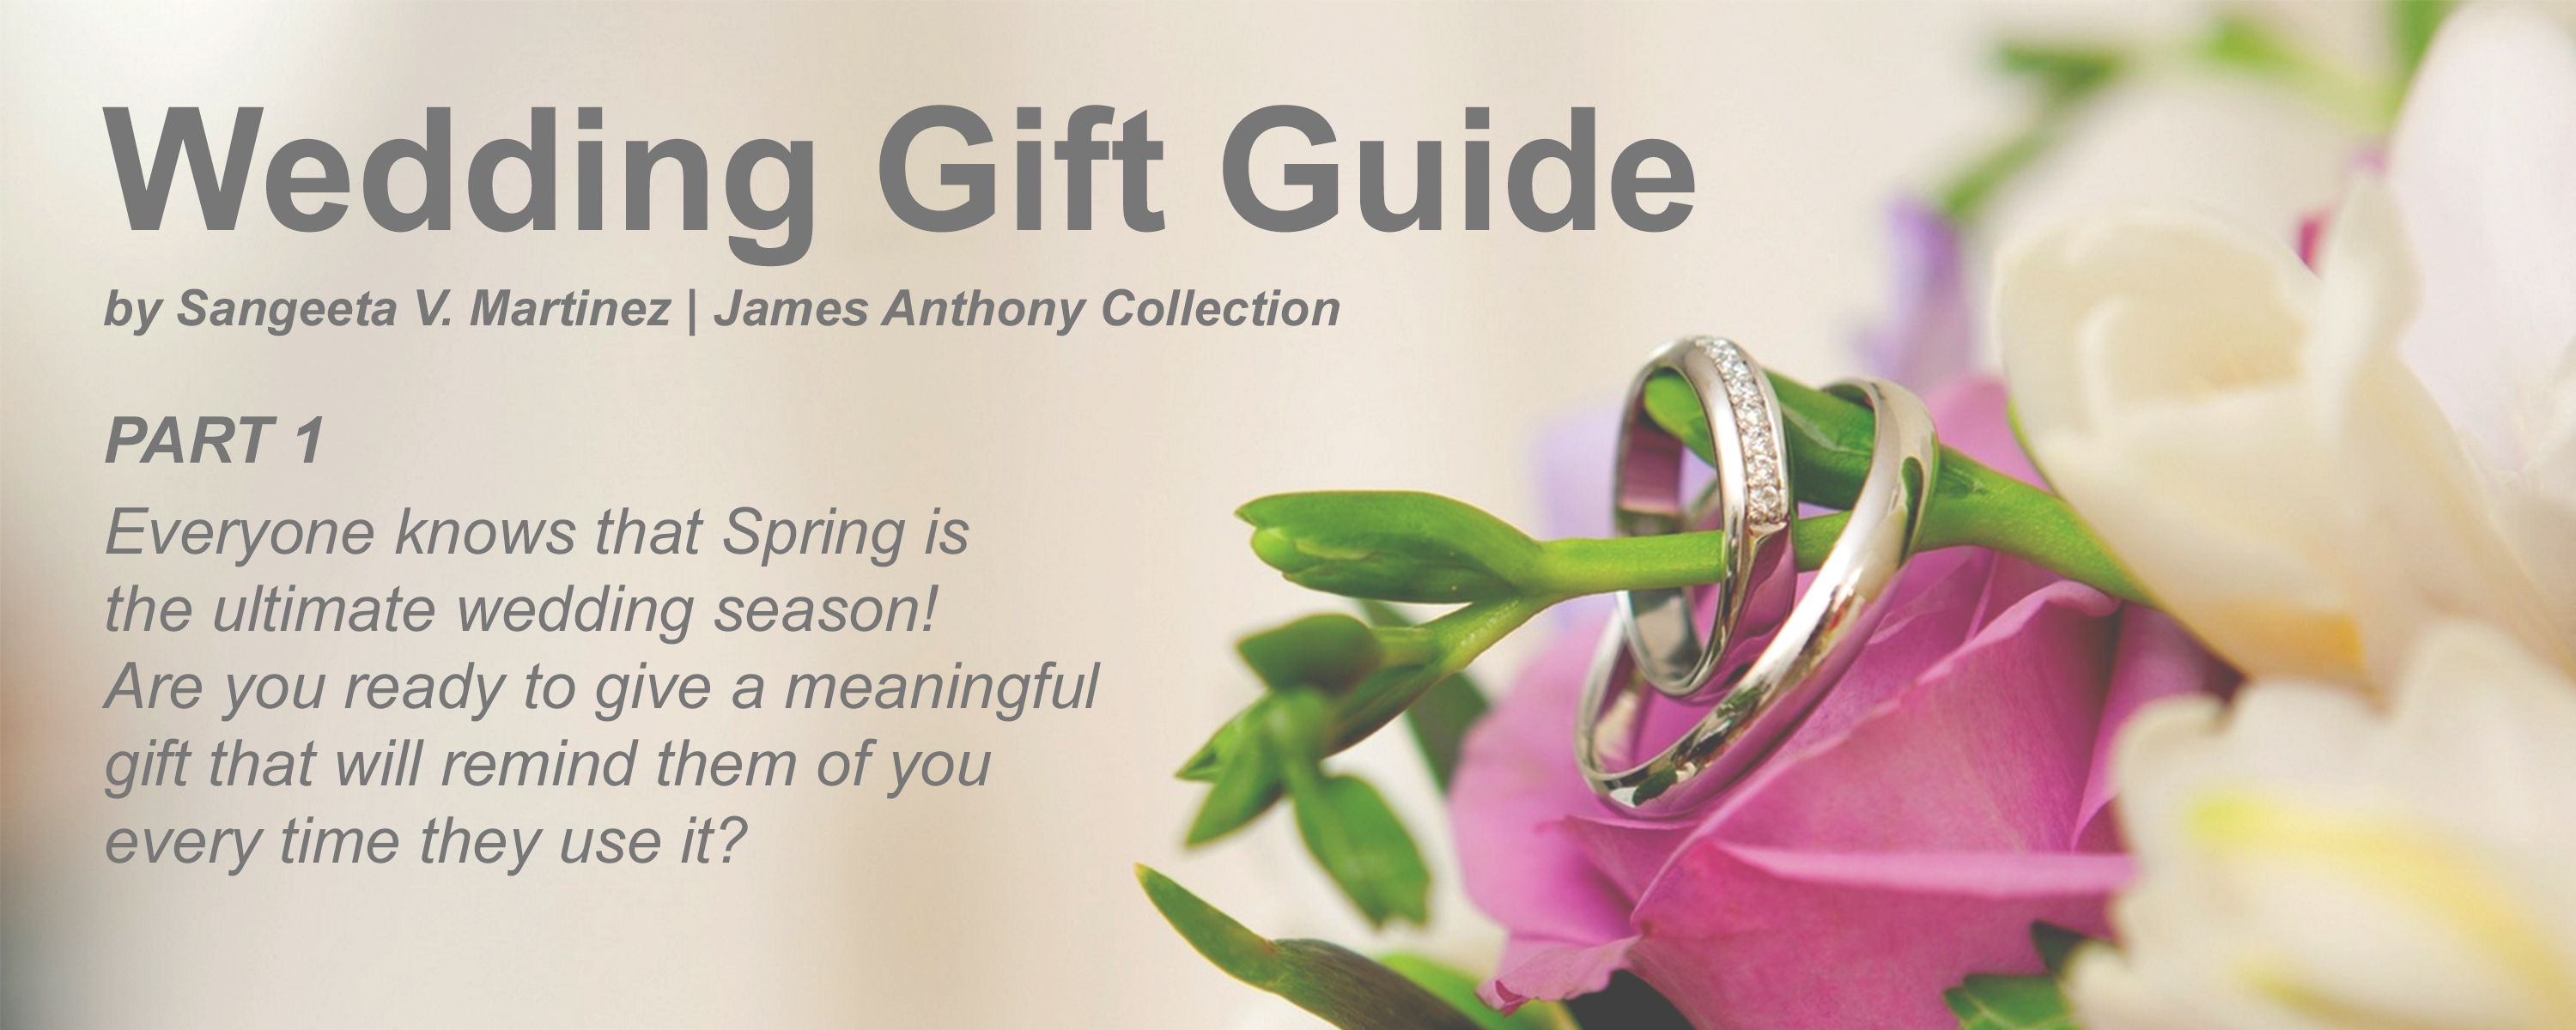 Wedding Gift Guide Part 1 James Anthony Collection